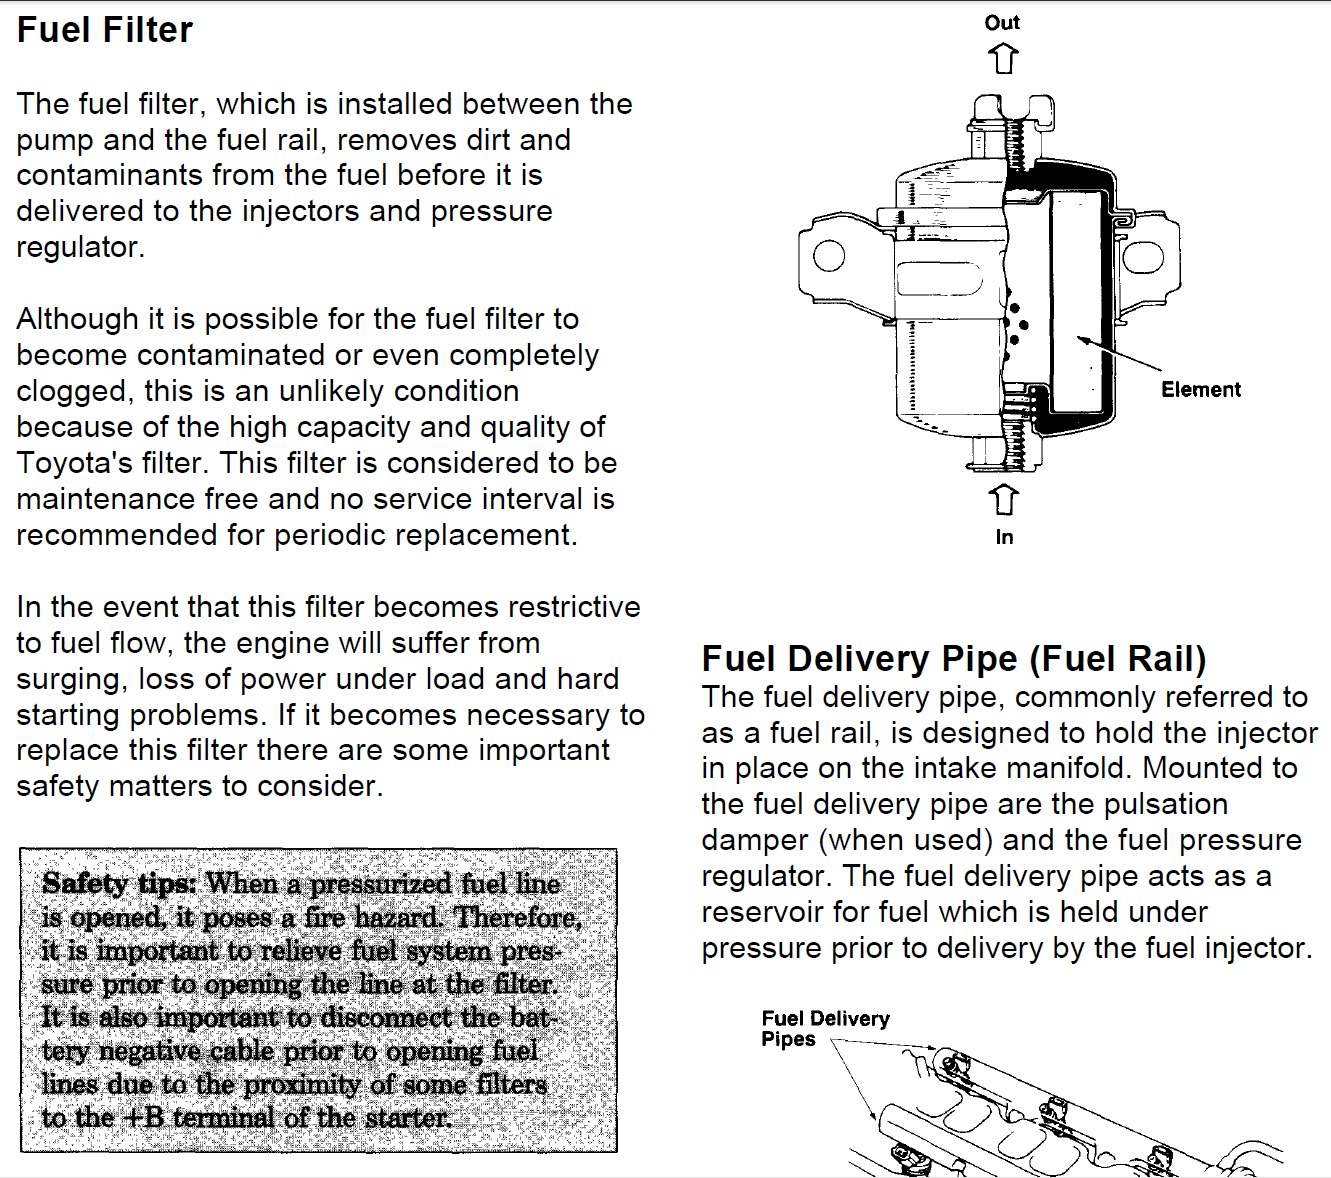 hight resolution of name fuelfilter jpg views 320 size 390 7 kb